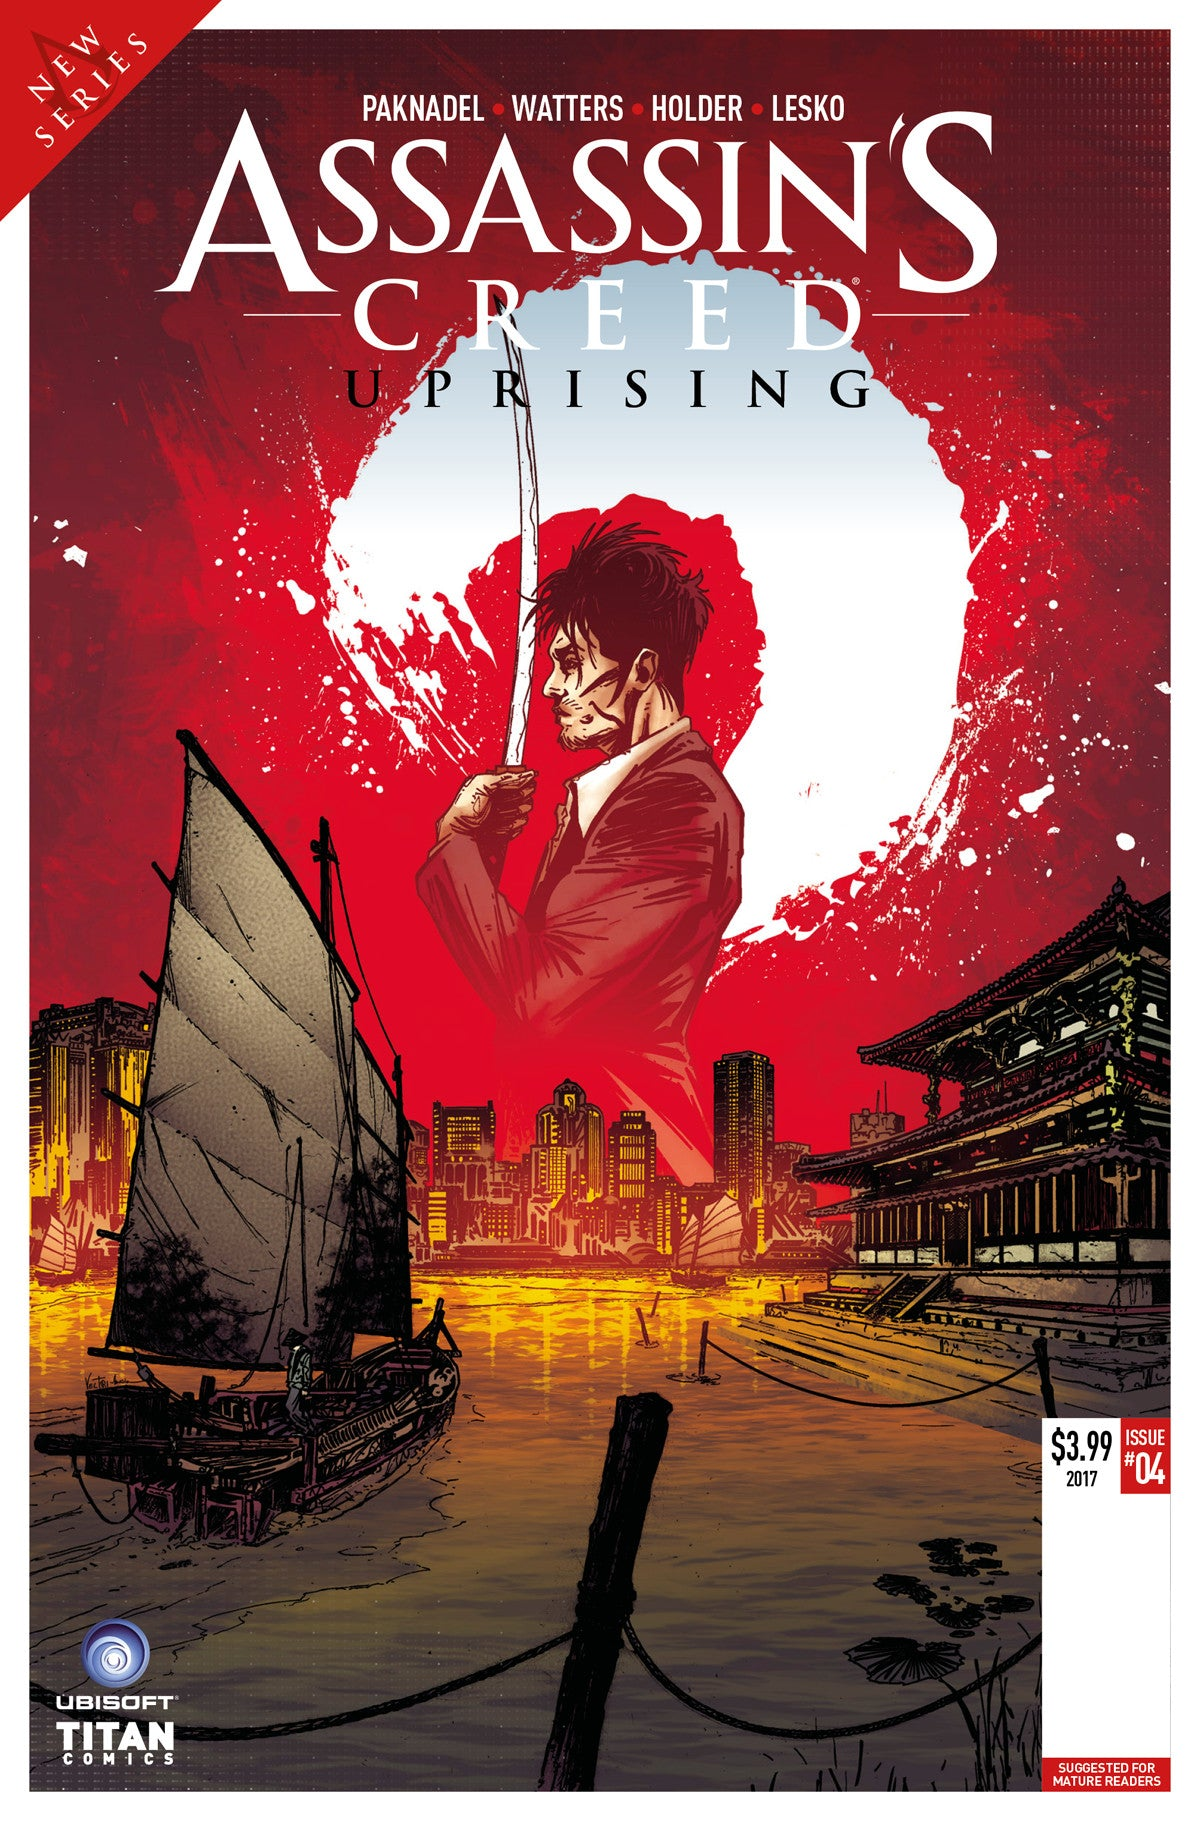 ASSASSINS CREED UPRISING #5 CVR B VELTRI